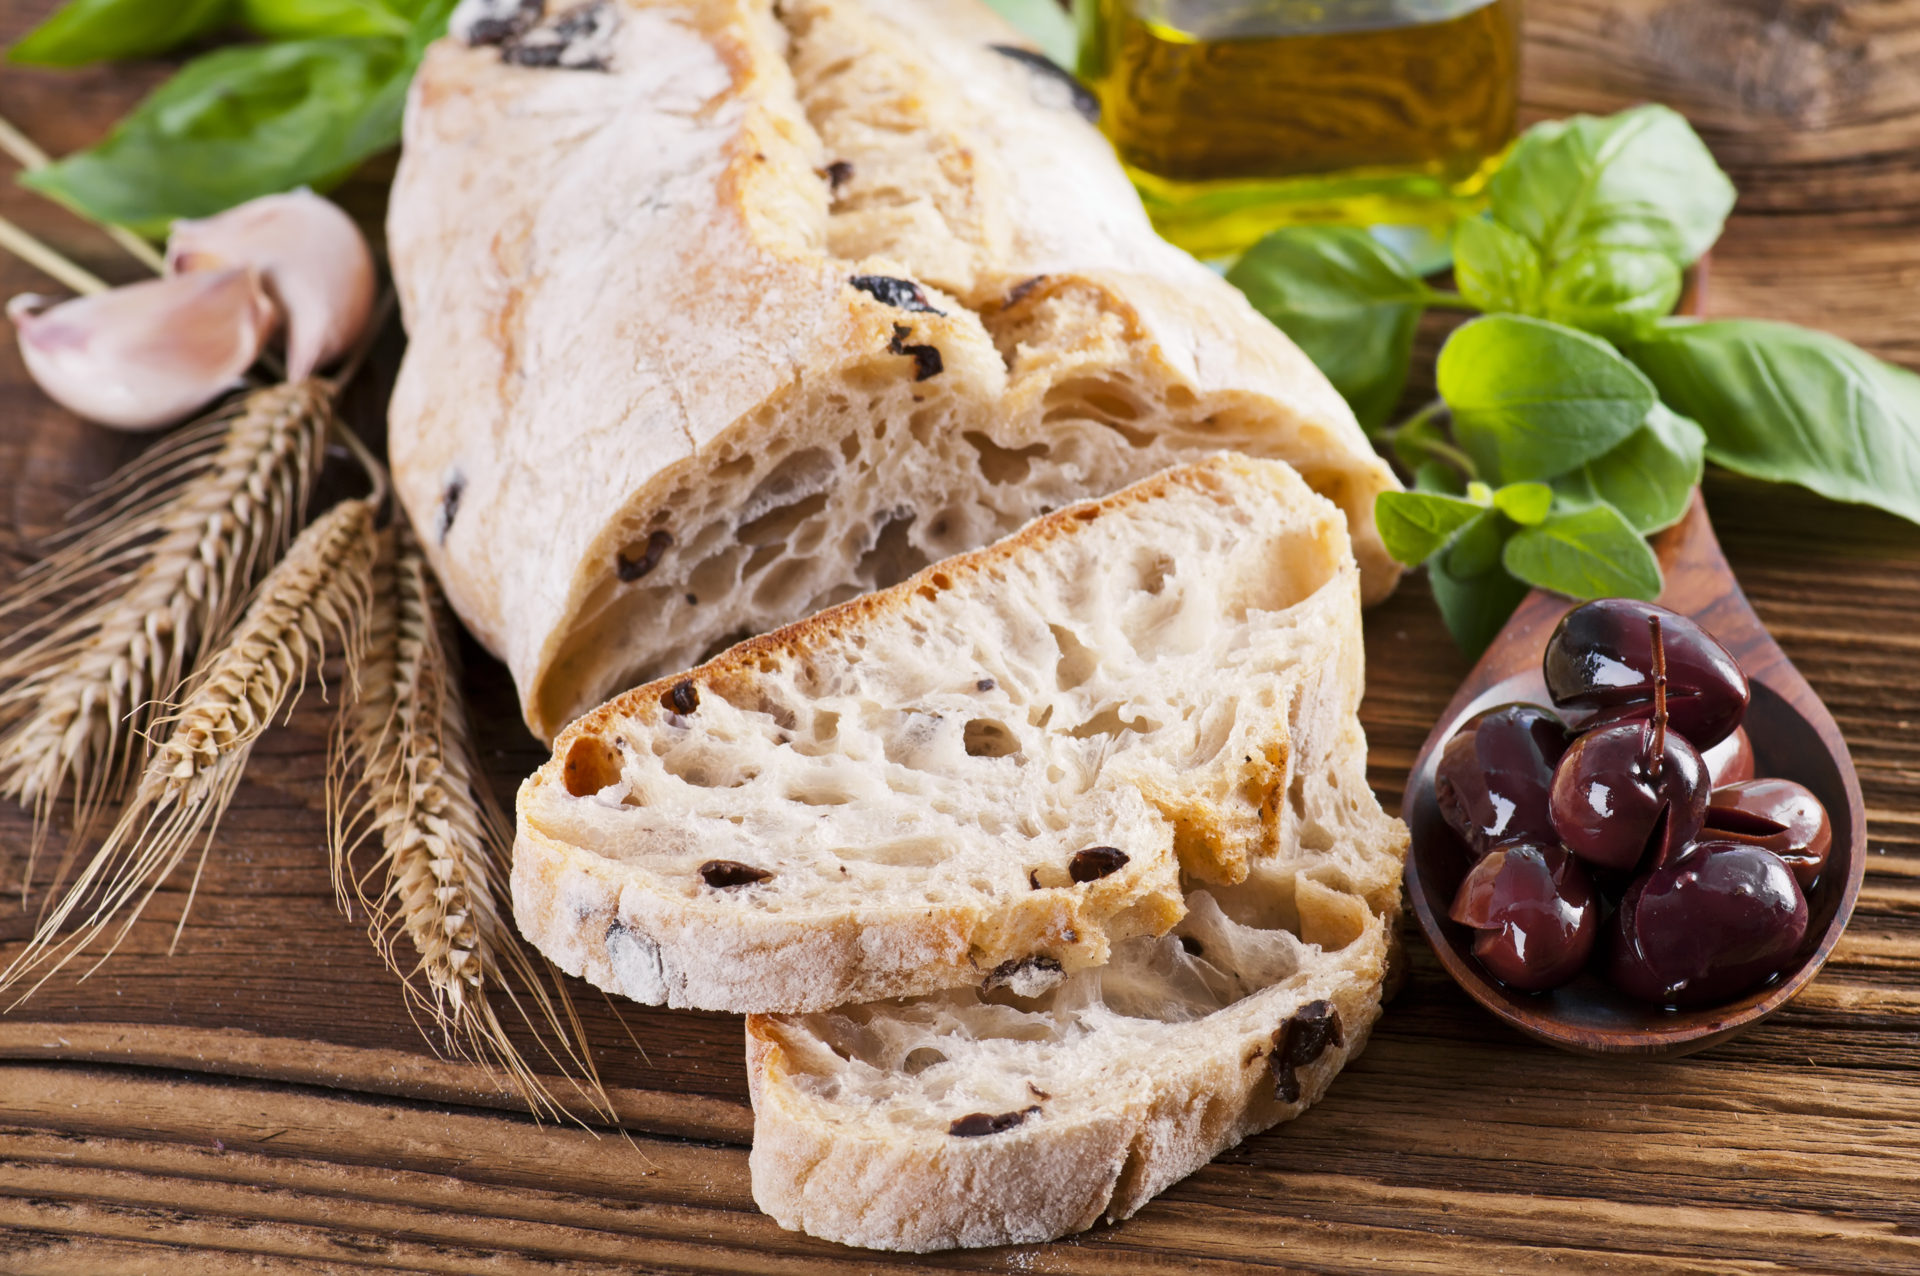 Olive bread with herbs